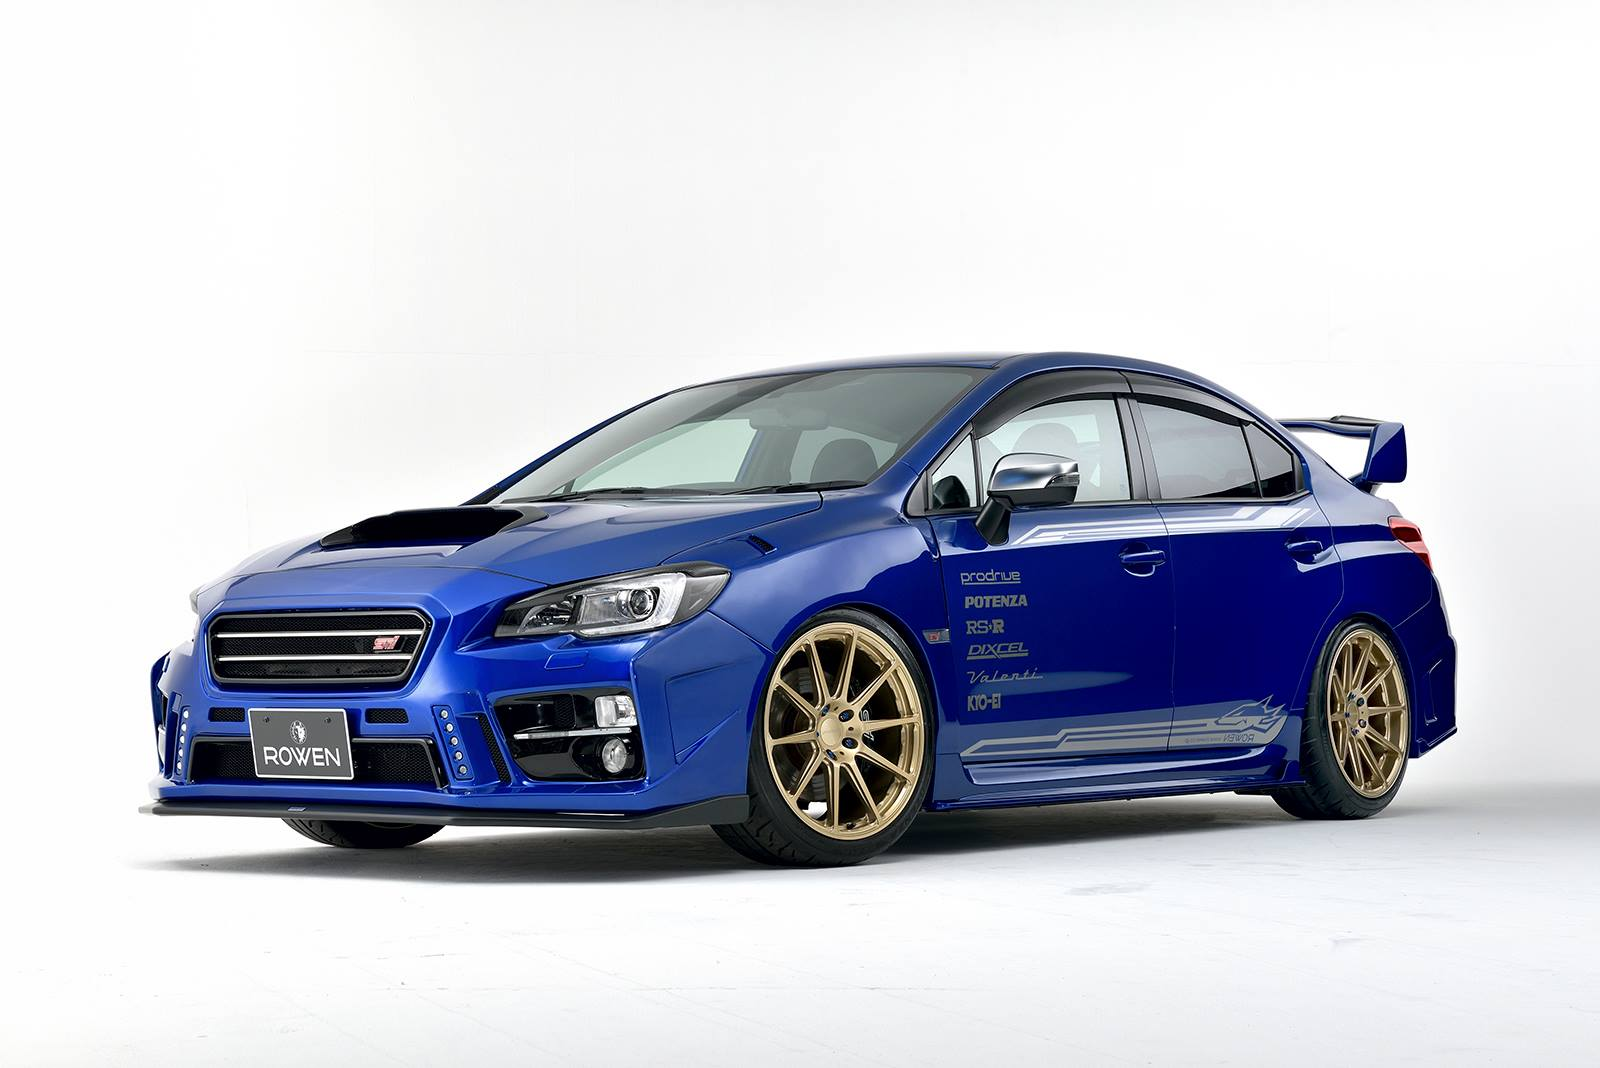 this is rowen s magnificent subaru wrx sti racer carz tuning. Black Bedroom Furniture Sets. Home Design Ideas